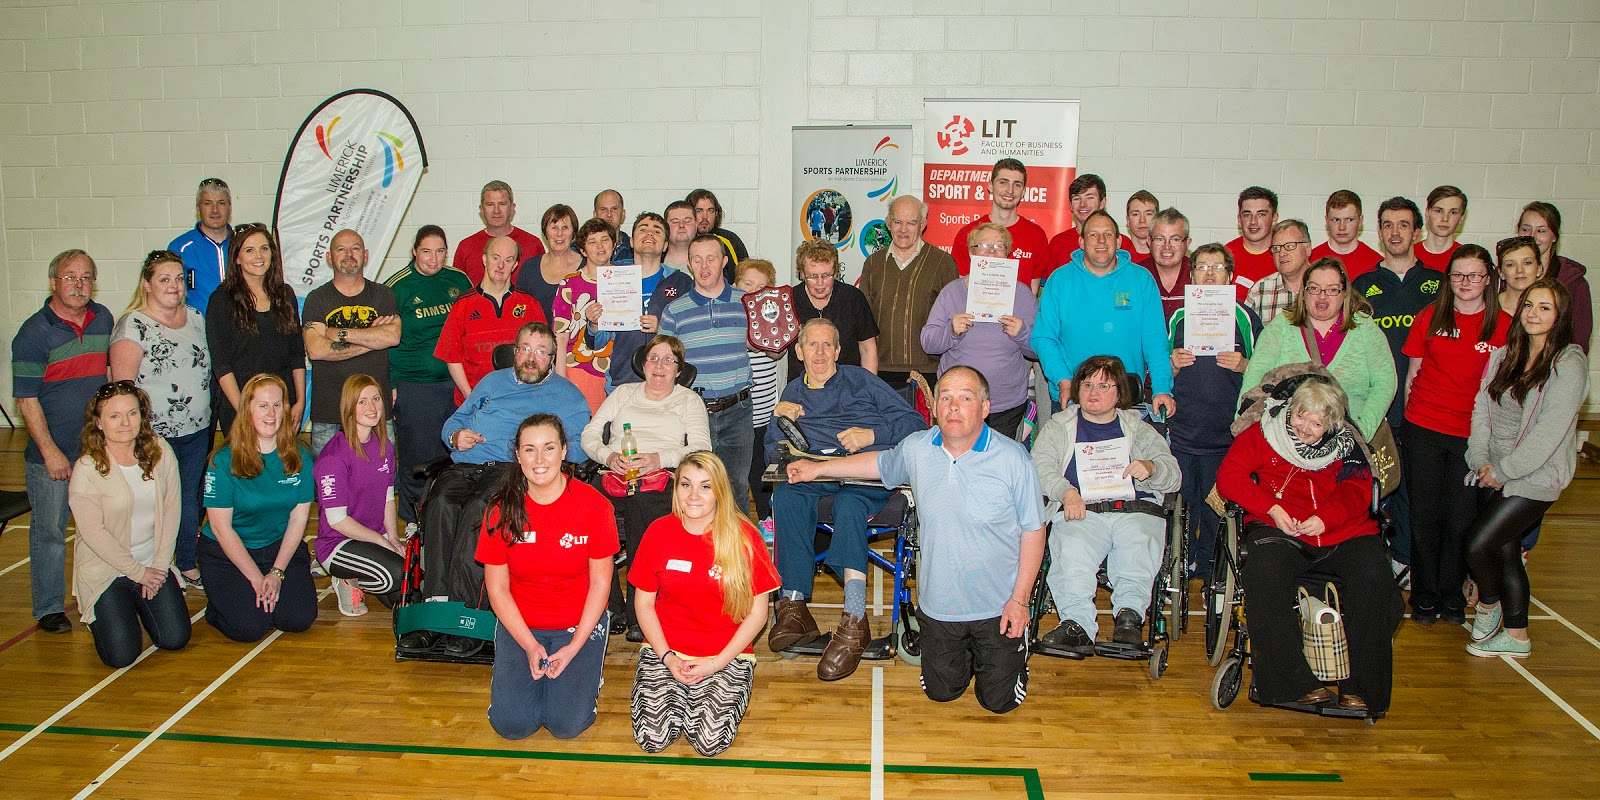 Rehab Care team wins Limerick Boccia Tournament